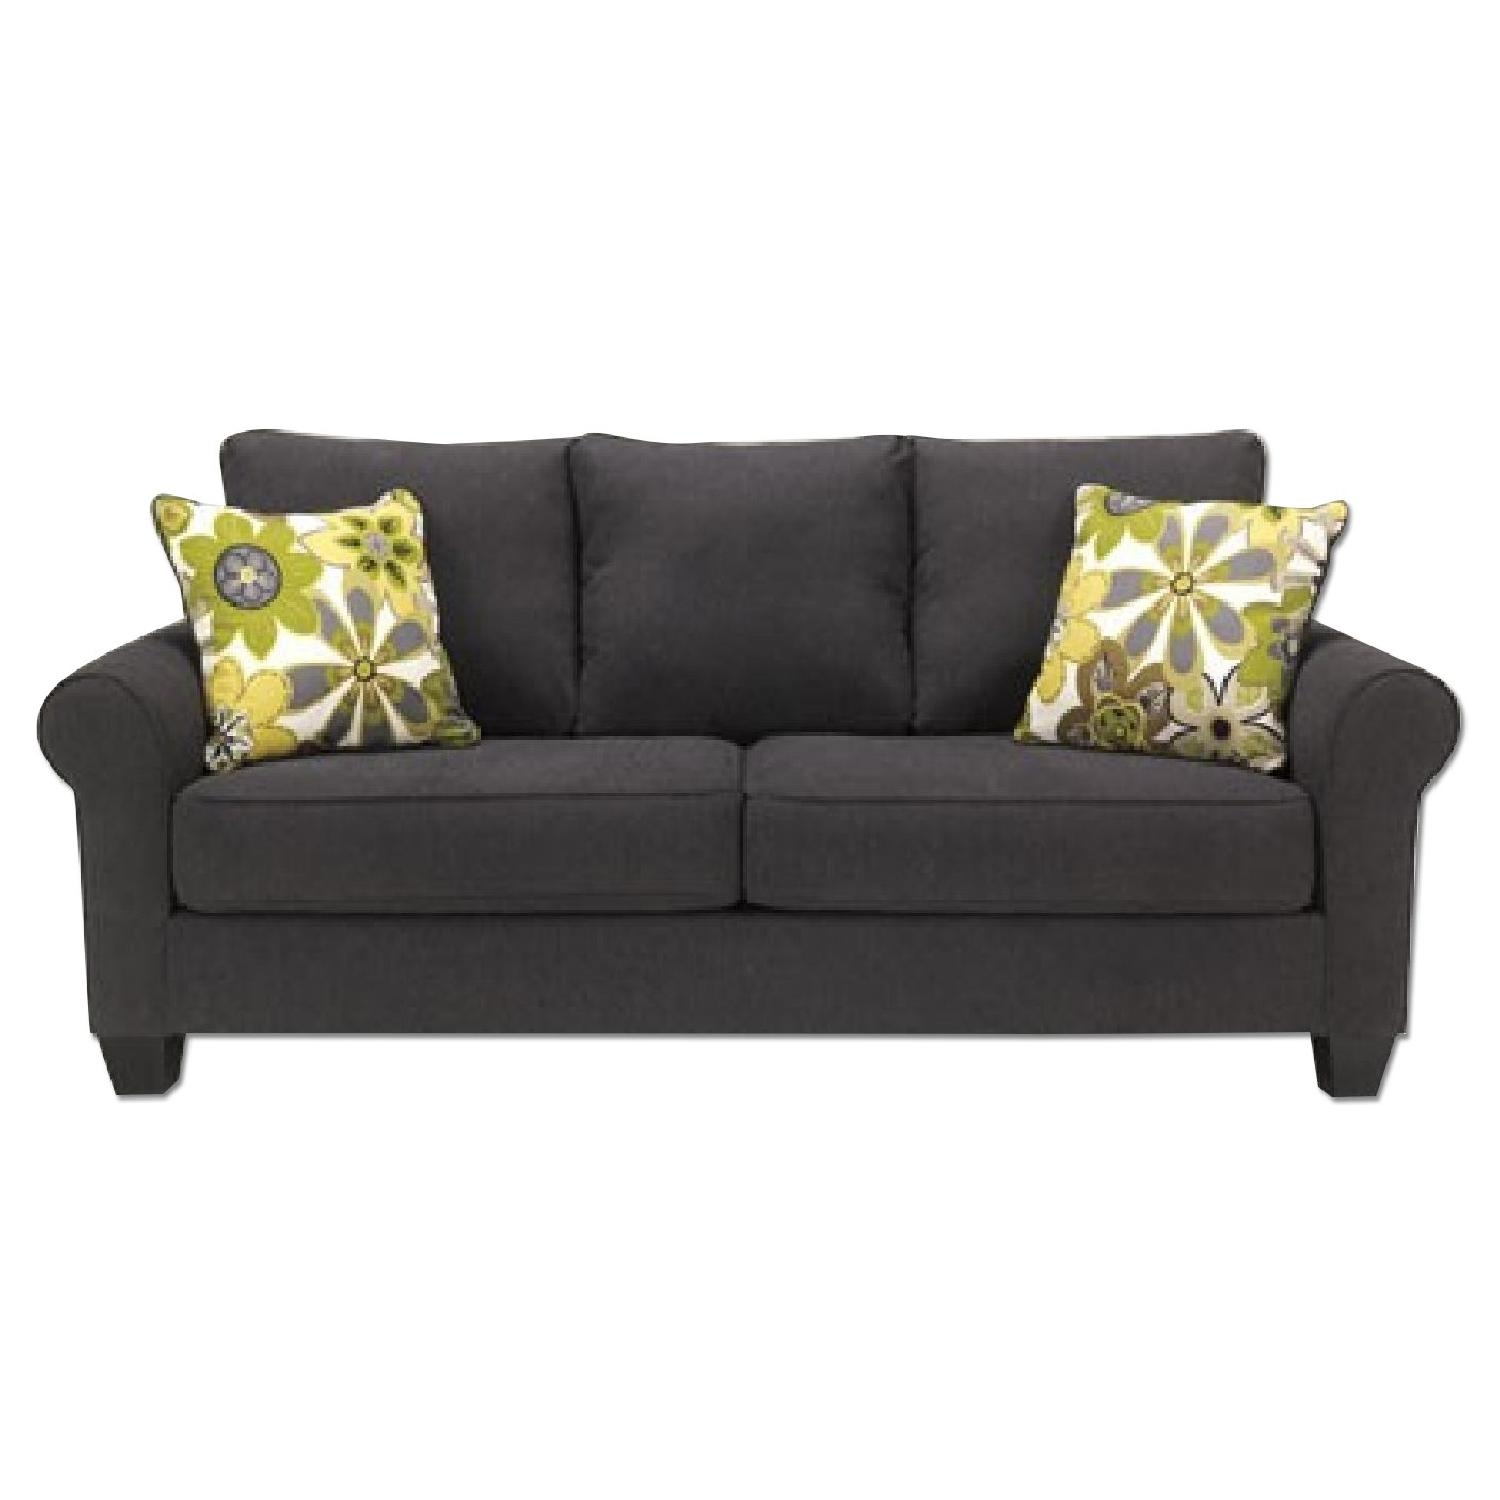 Pottery Barn Sofa Review Images Astonishing